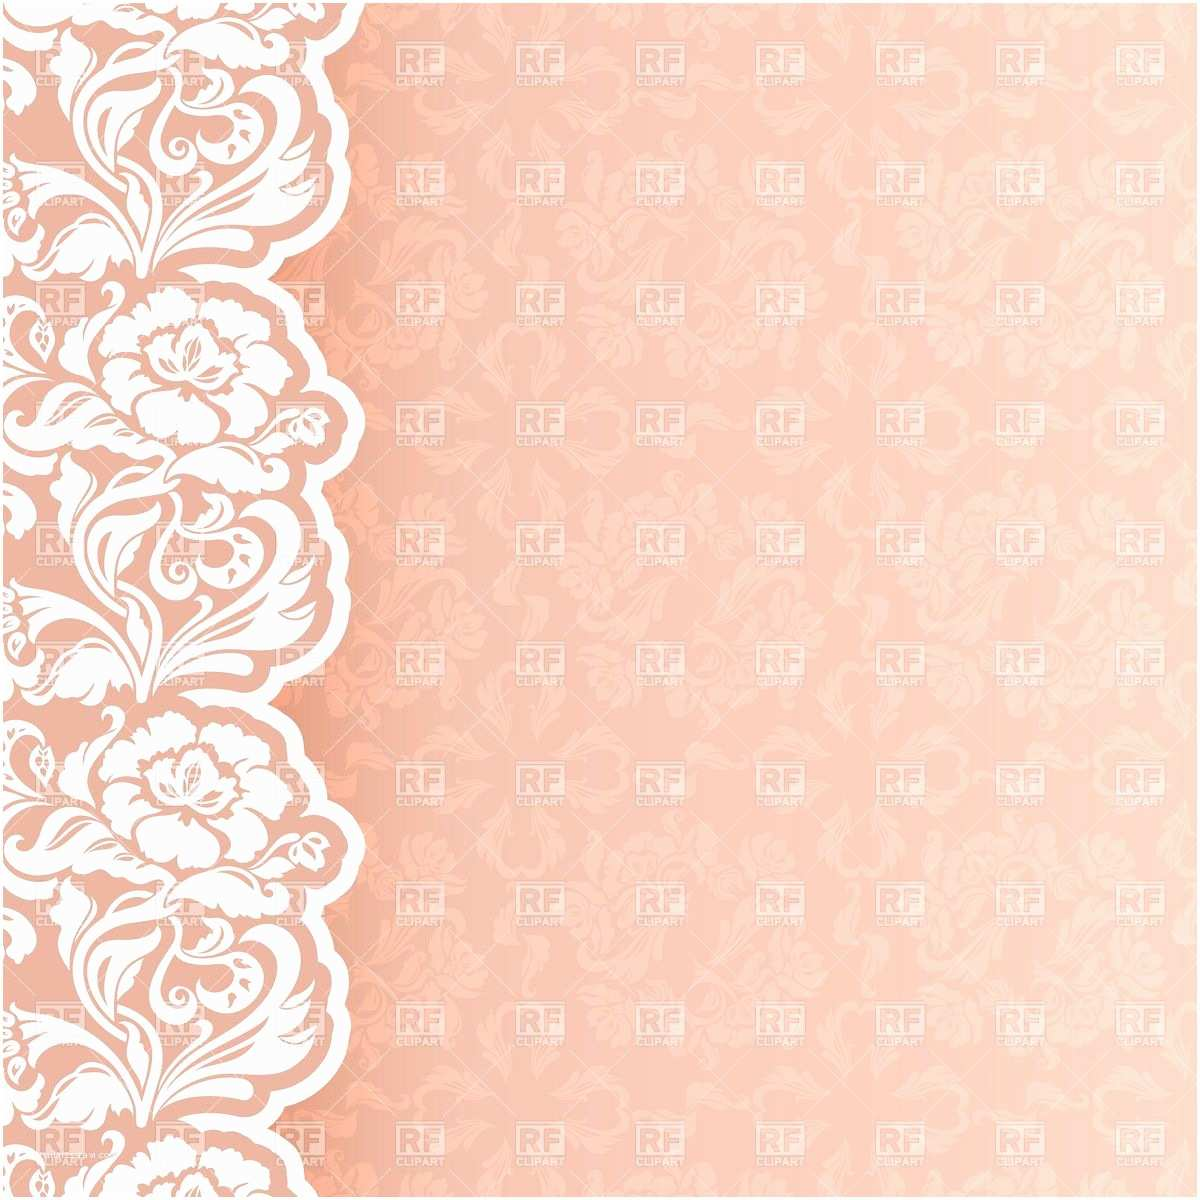 Lace Pattern Wedding Invitations Flower and Lace Border Clip Art